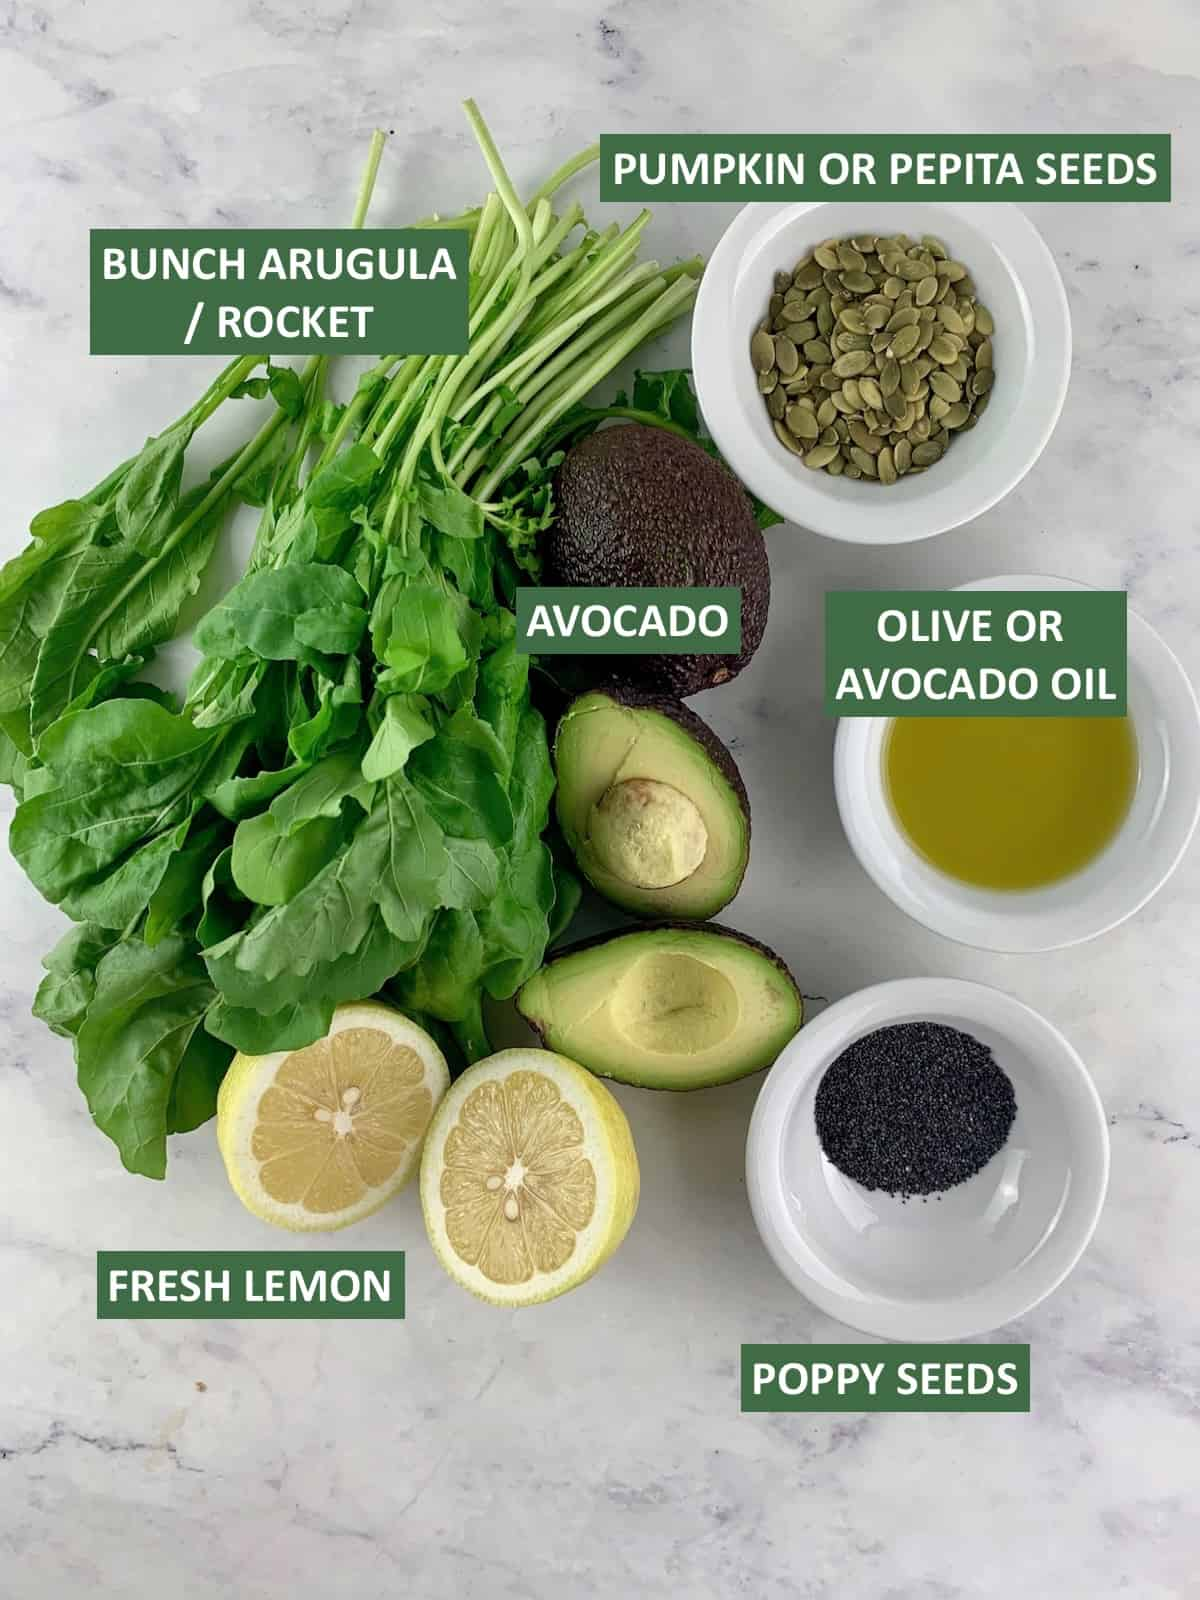 LABELLED INGREDIENTS NEEDED TO MAKE ARGULA AVOCADO SALAD